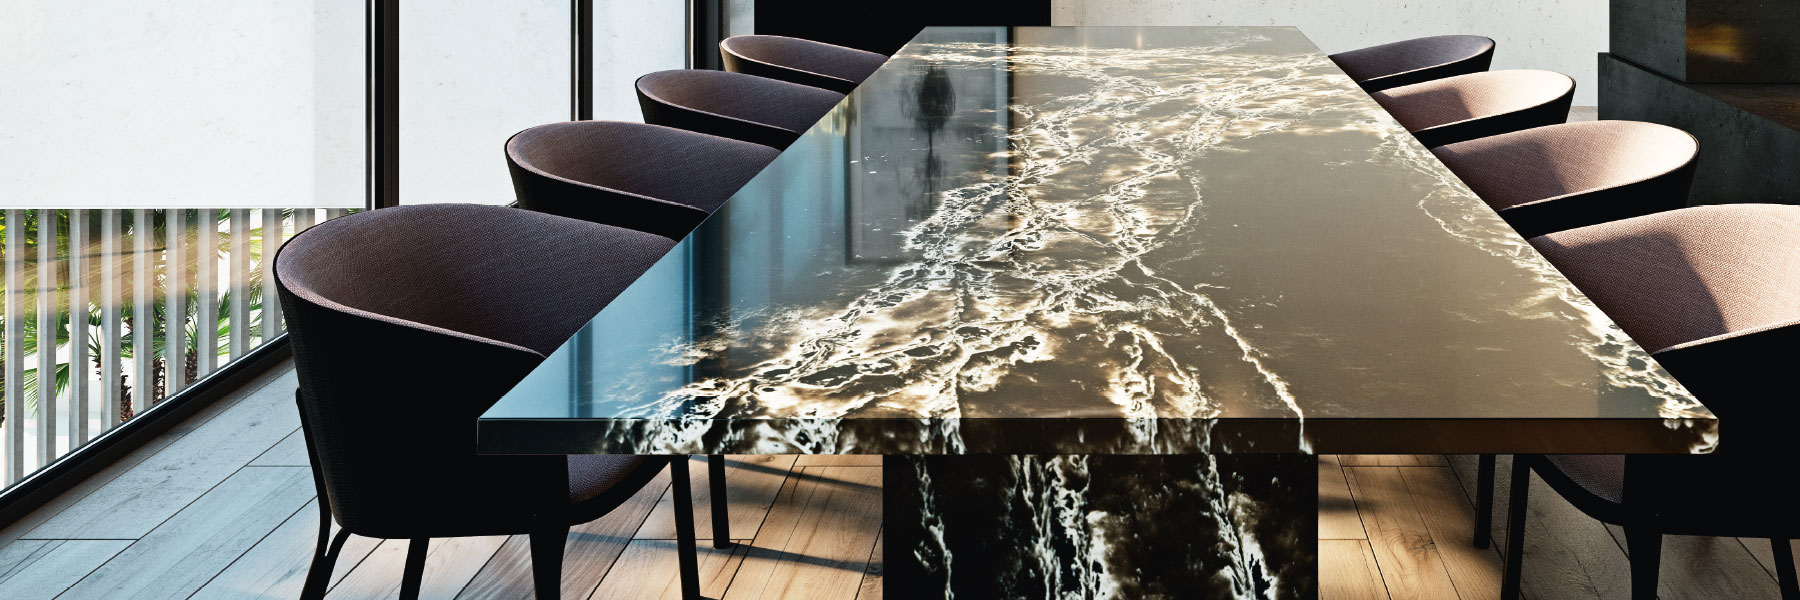 COMPAC, COMPACSURFACES, COMPAC THE SURFACE COMPANY, GENESIS, ICE MAX BLACK